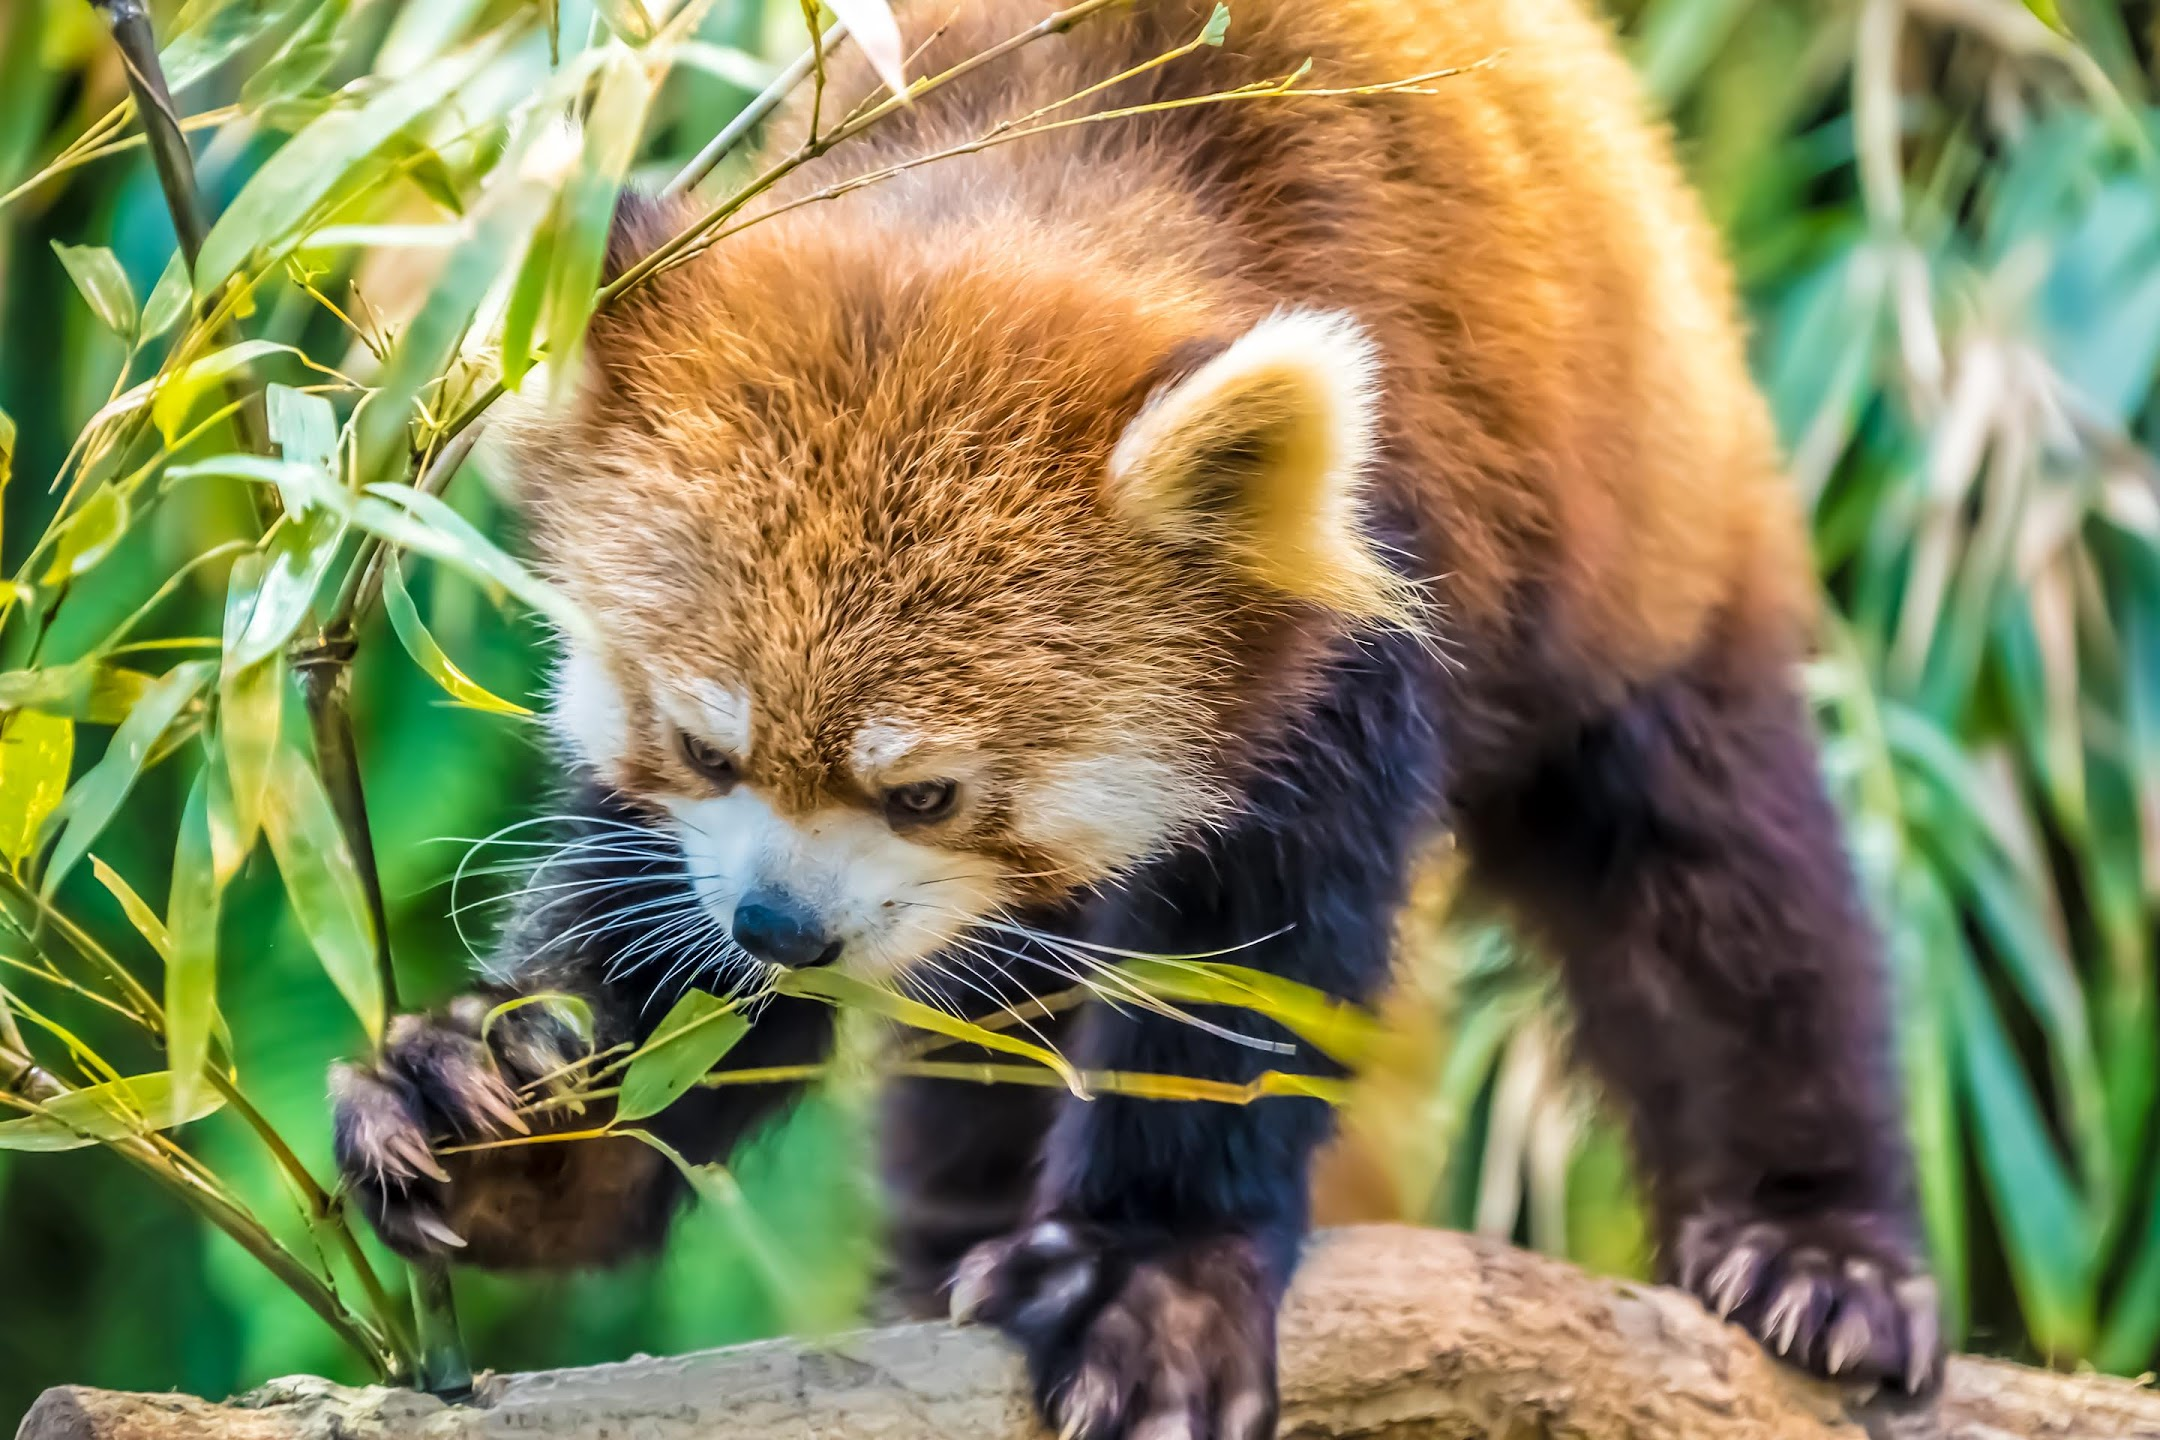 Kobe Animal Kingdom red panda2